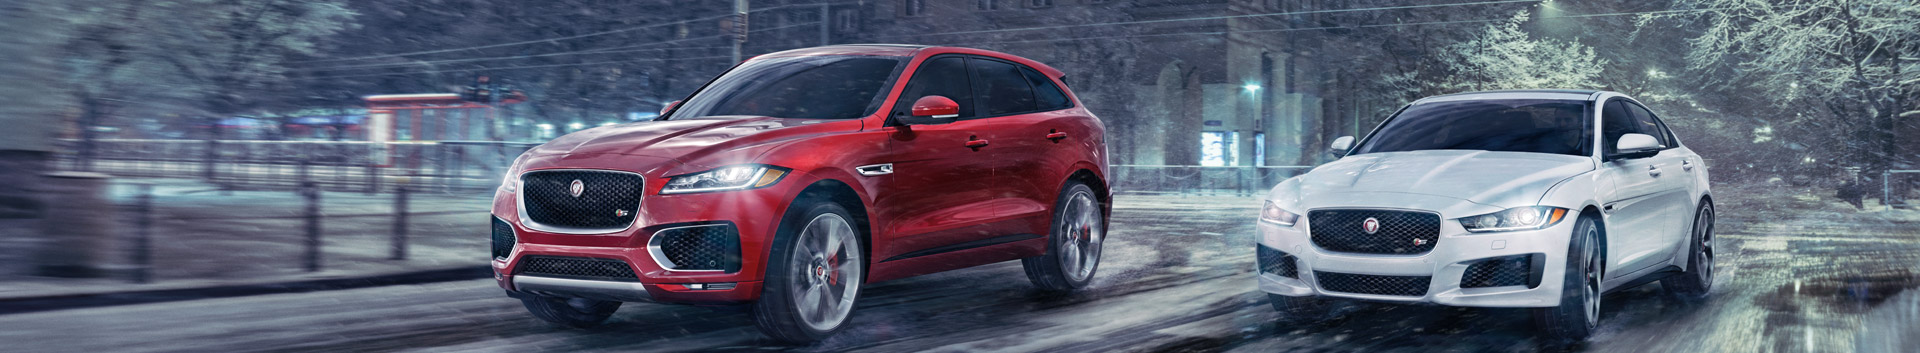 Jaguar XE and F-PACE in city